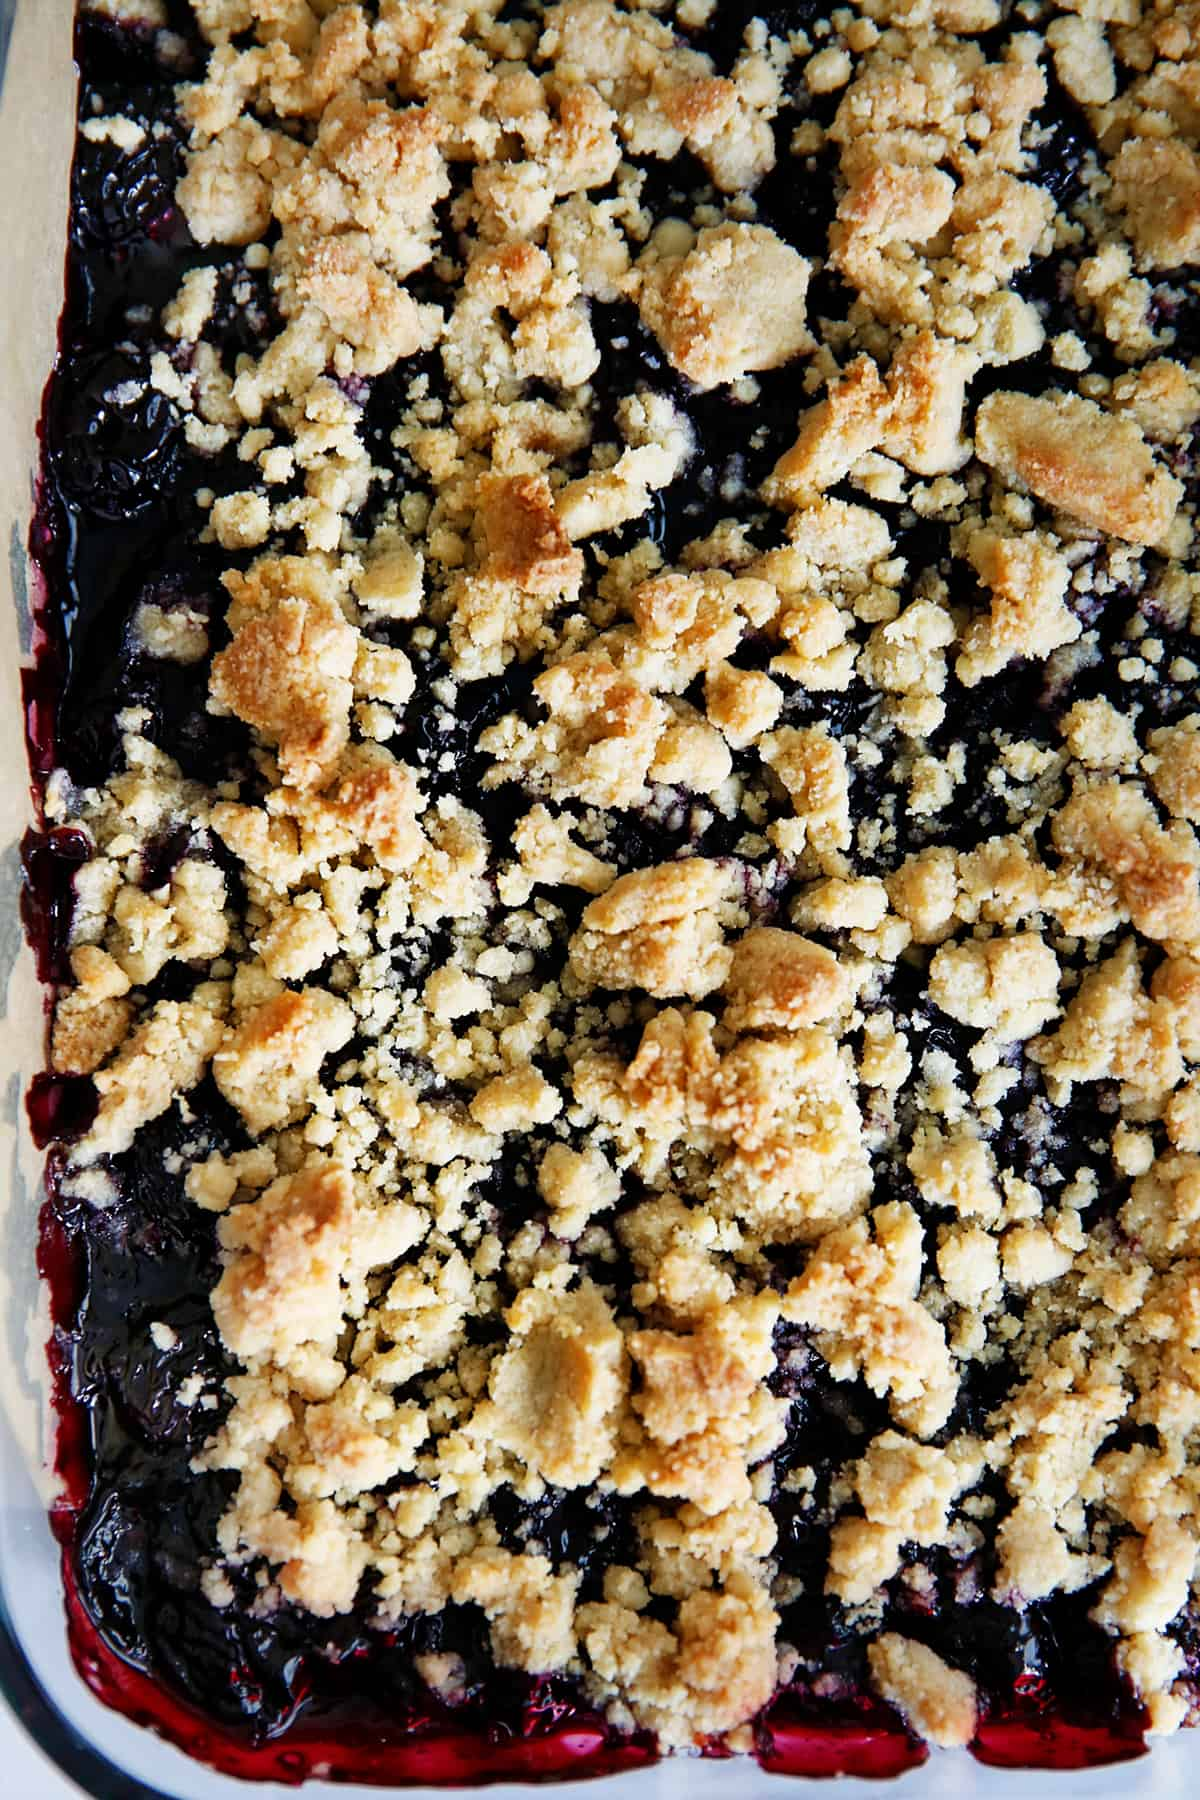 Top view of gluten-free cherry pie bars